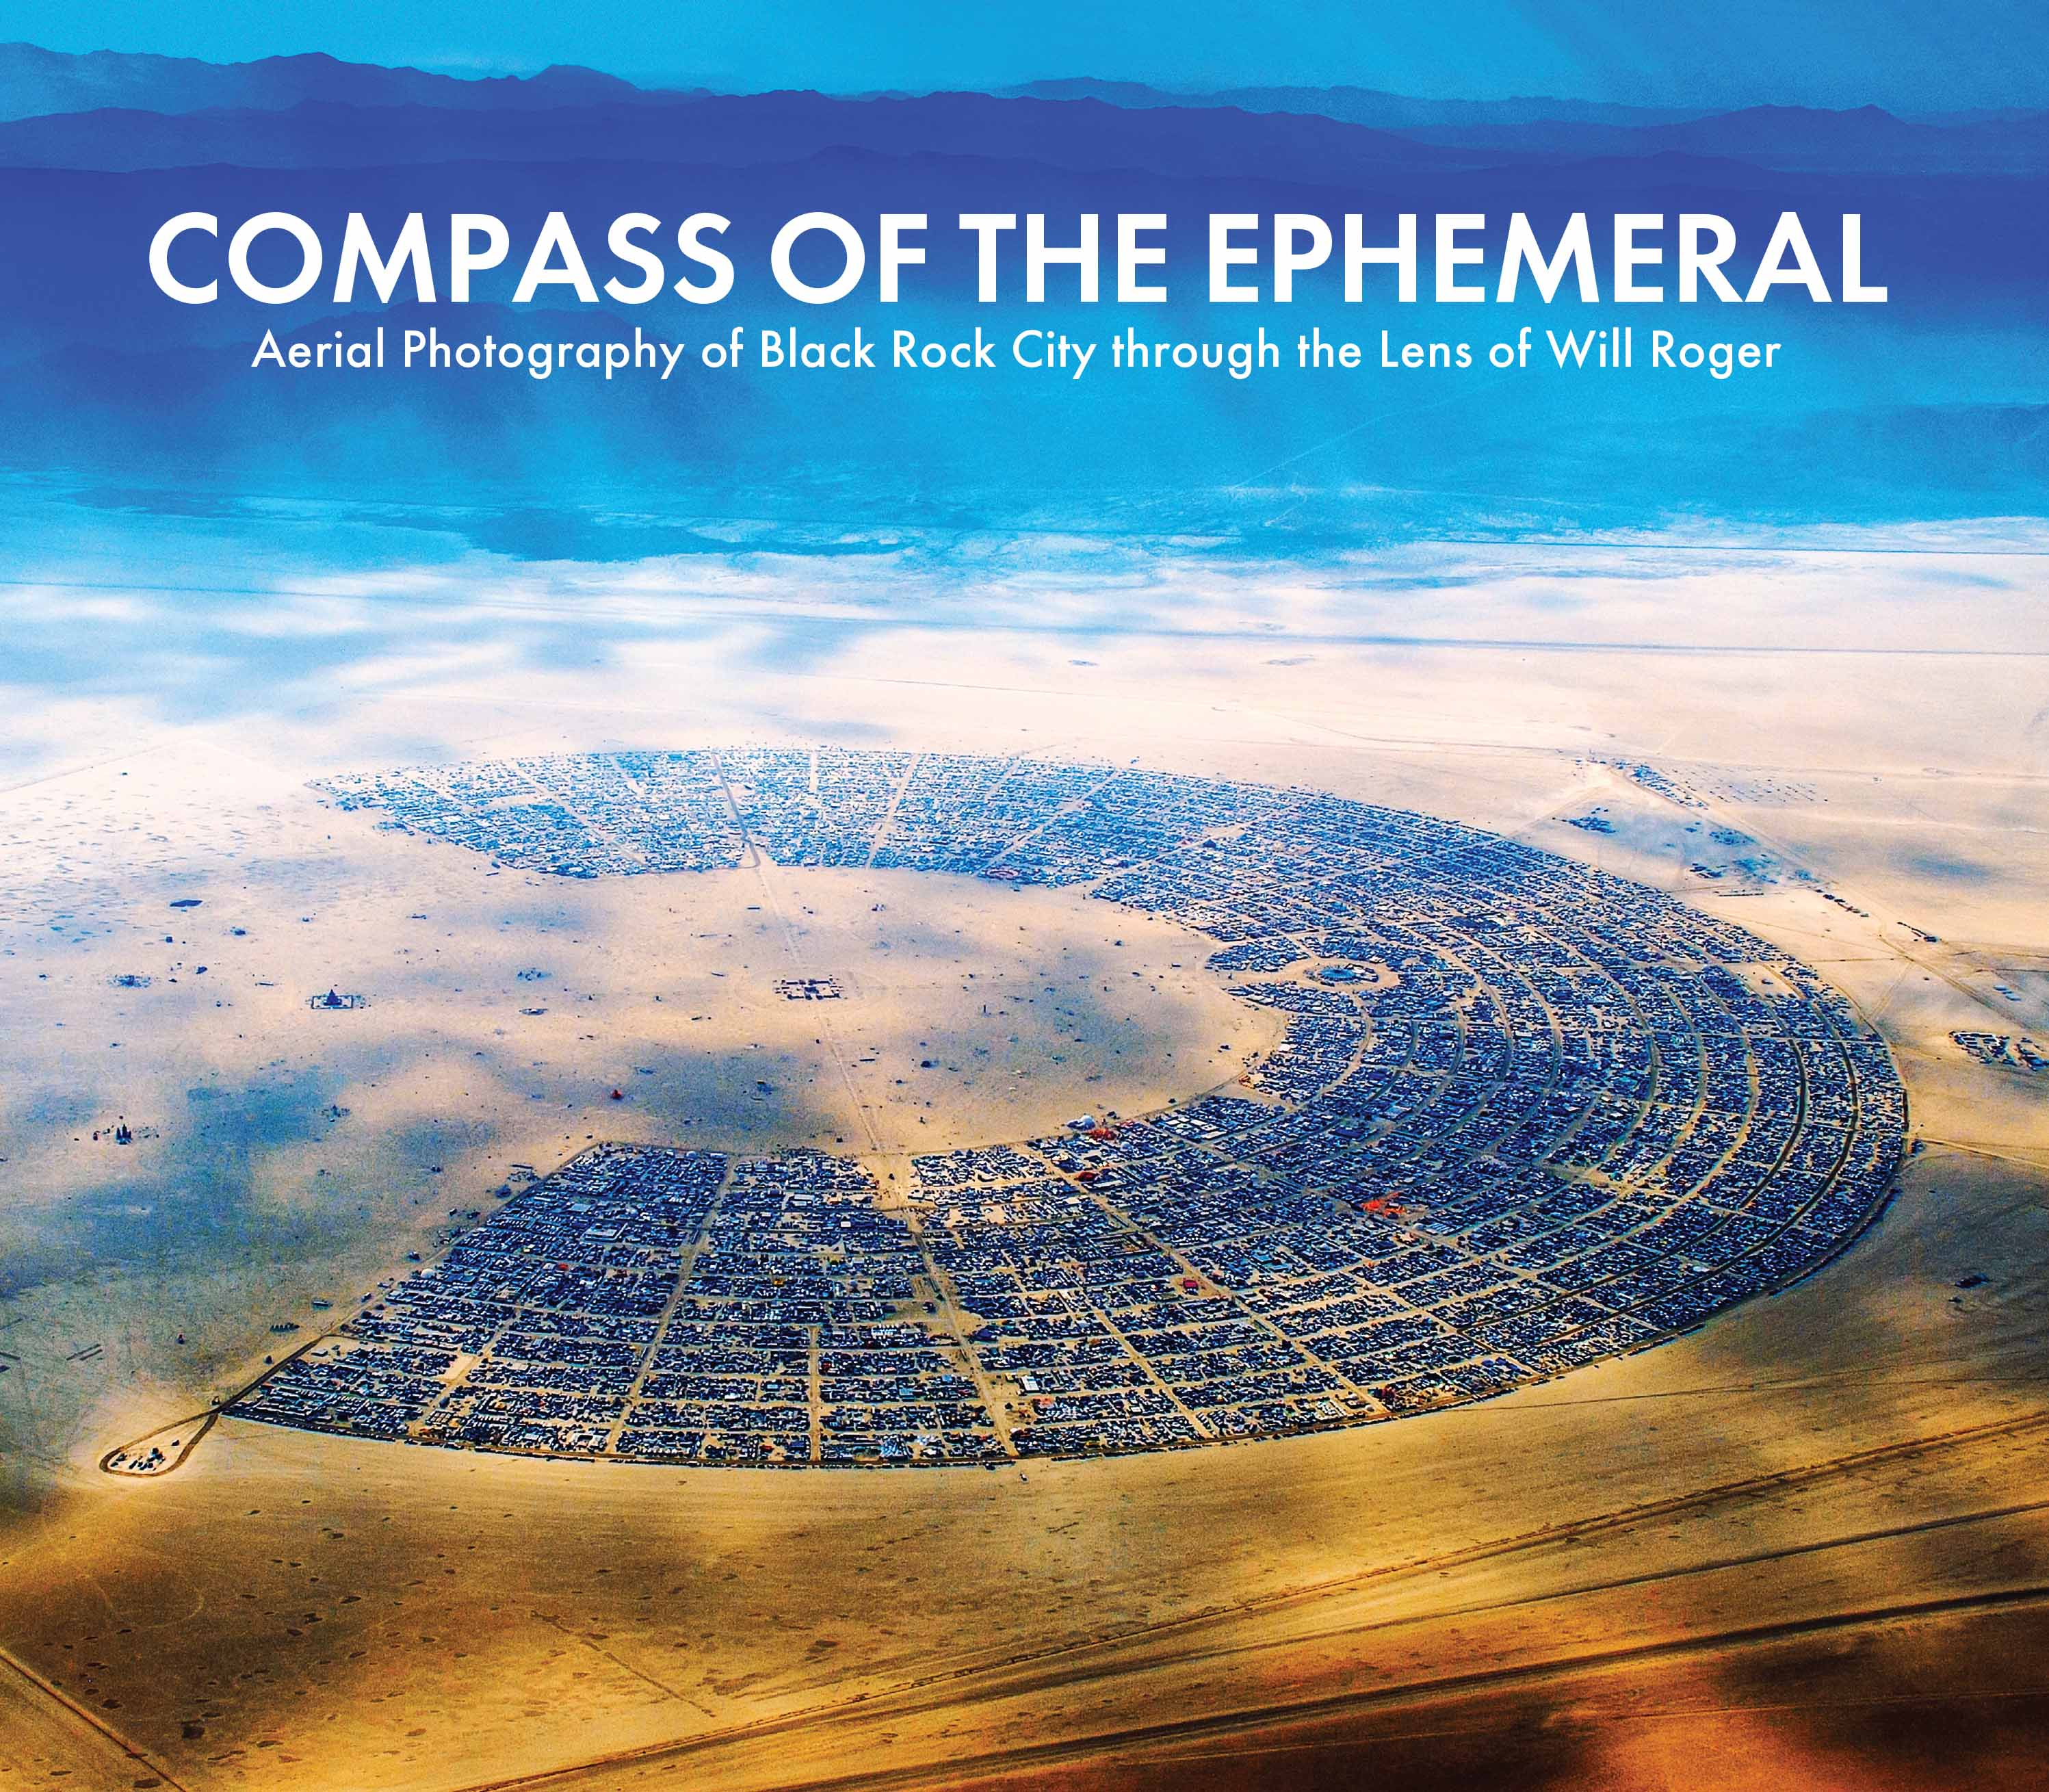 Compass of the Ephemeral